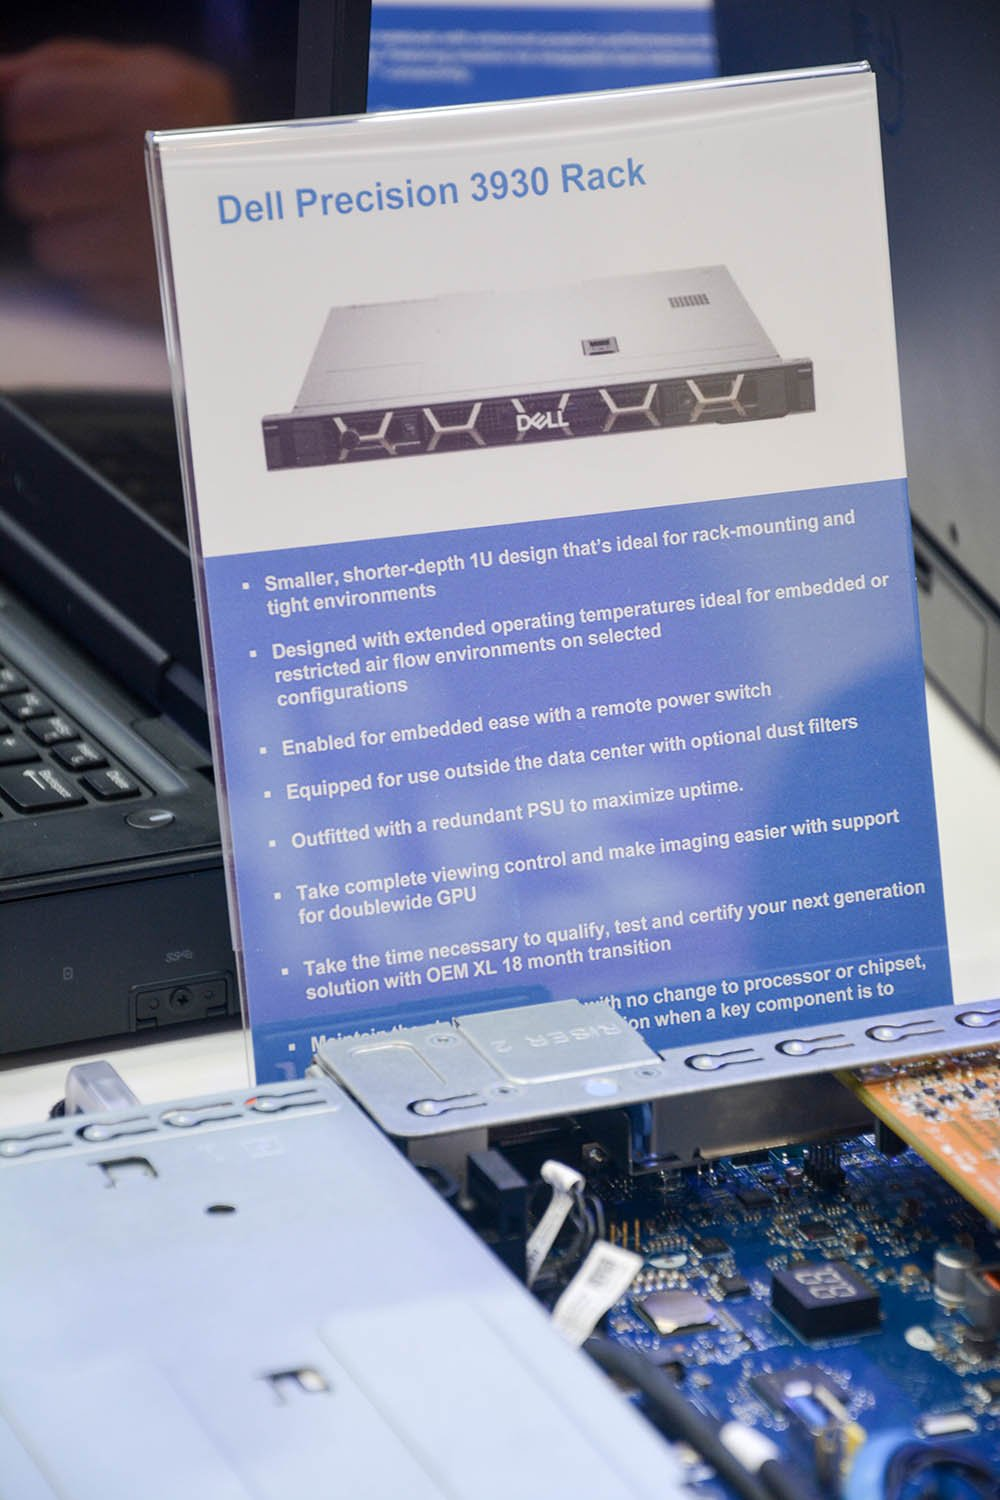 nowe-technologie-hannover-messe-18